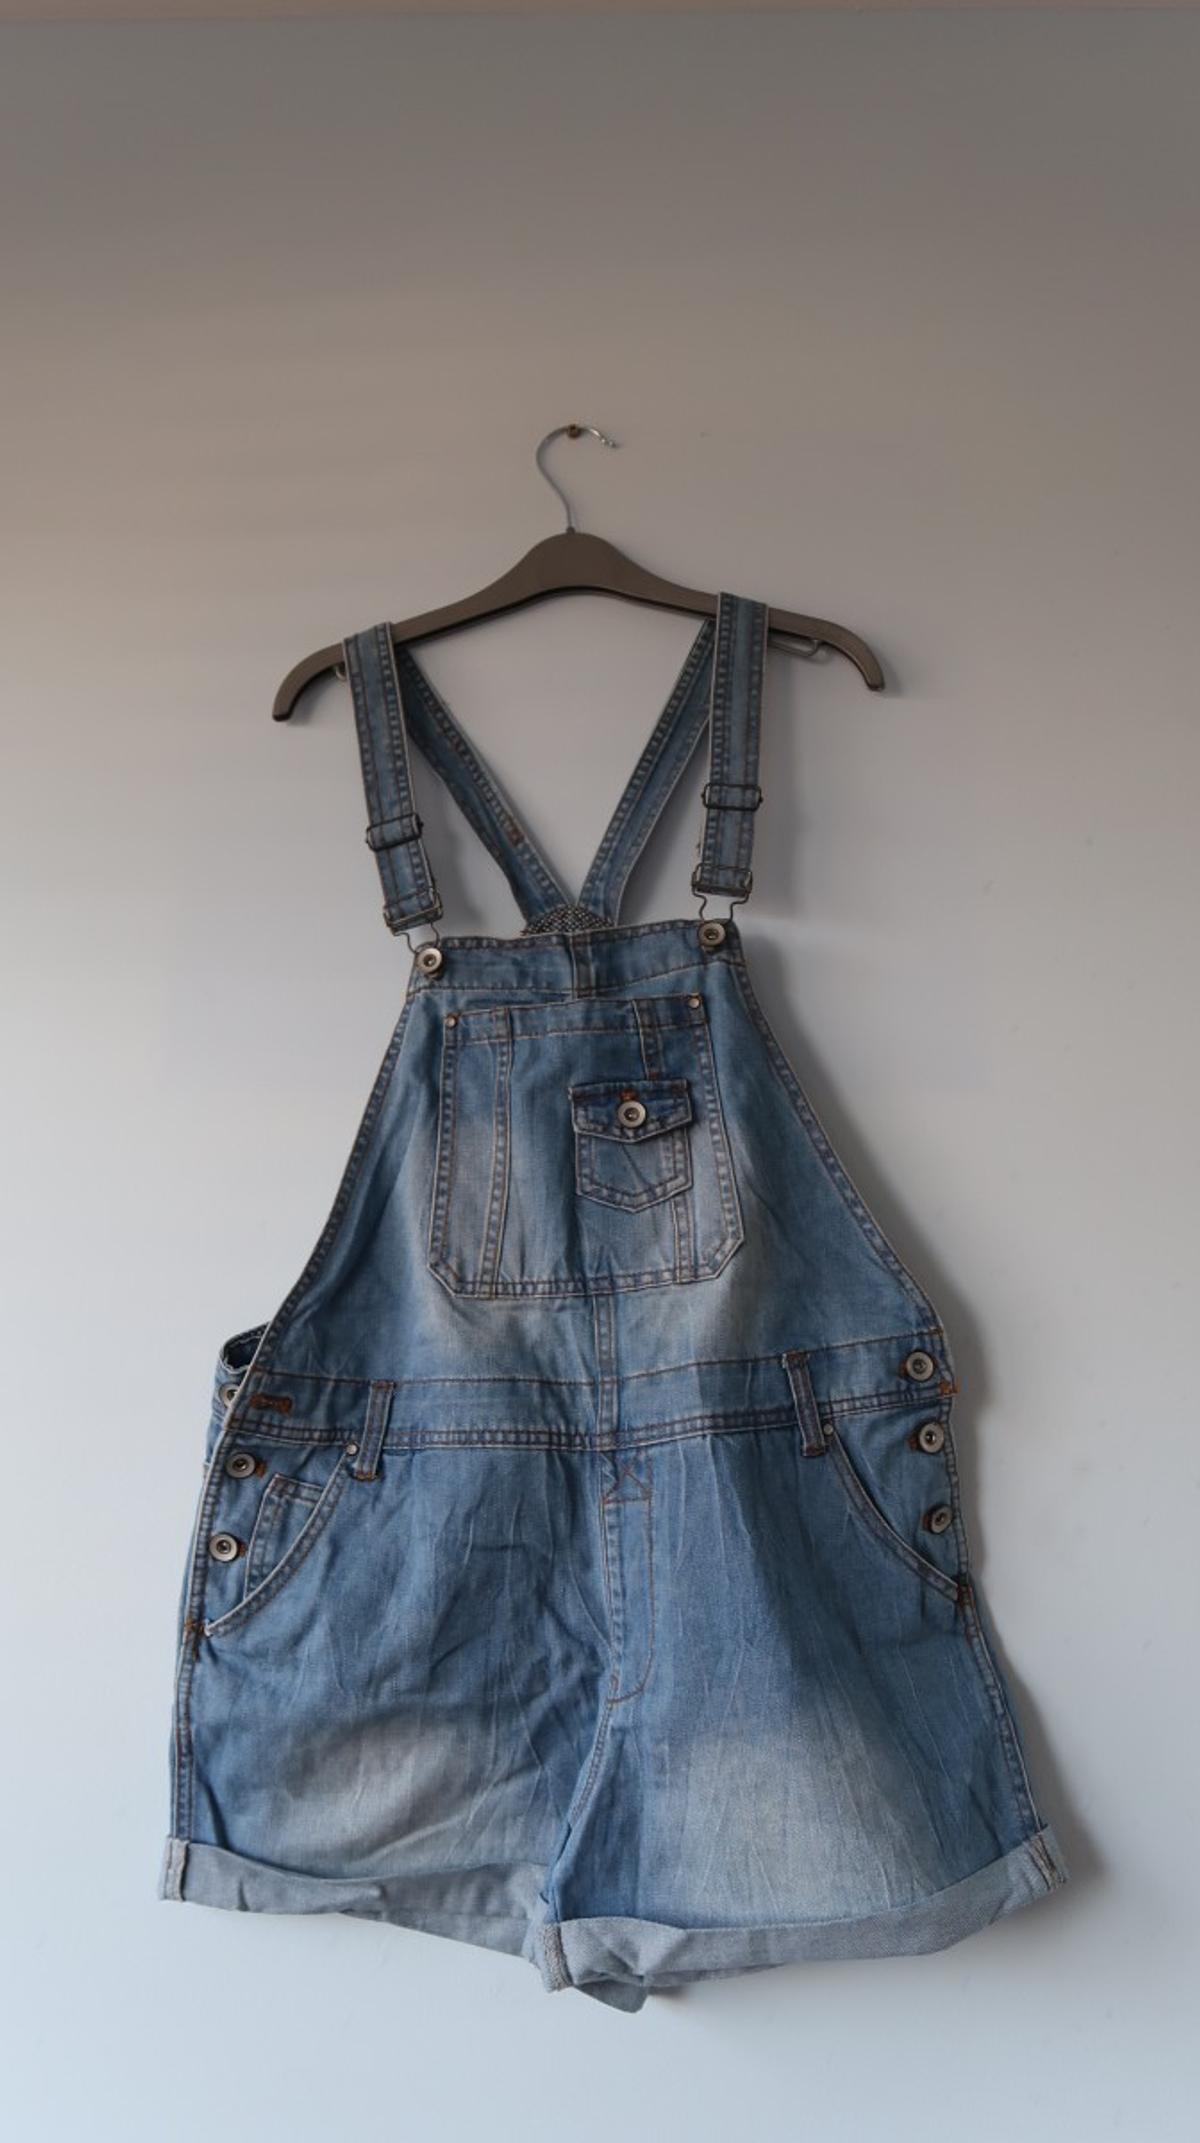 aea477b09c Denim playsuit size 14 in Dacorum for £2.00 for sale - Shpock